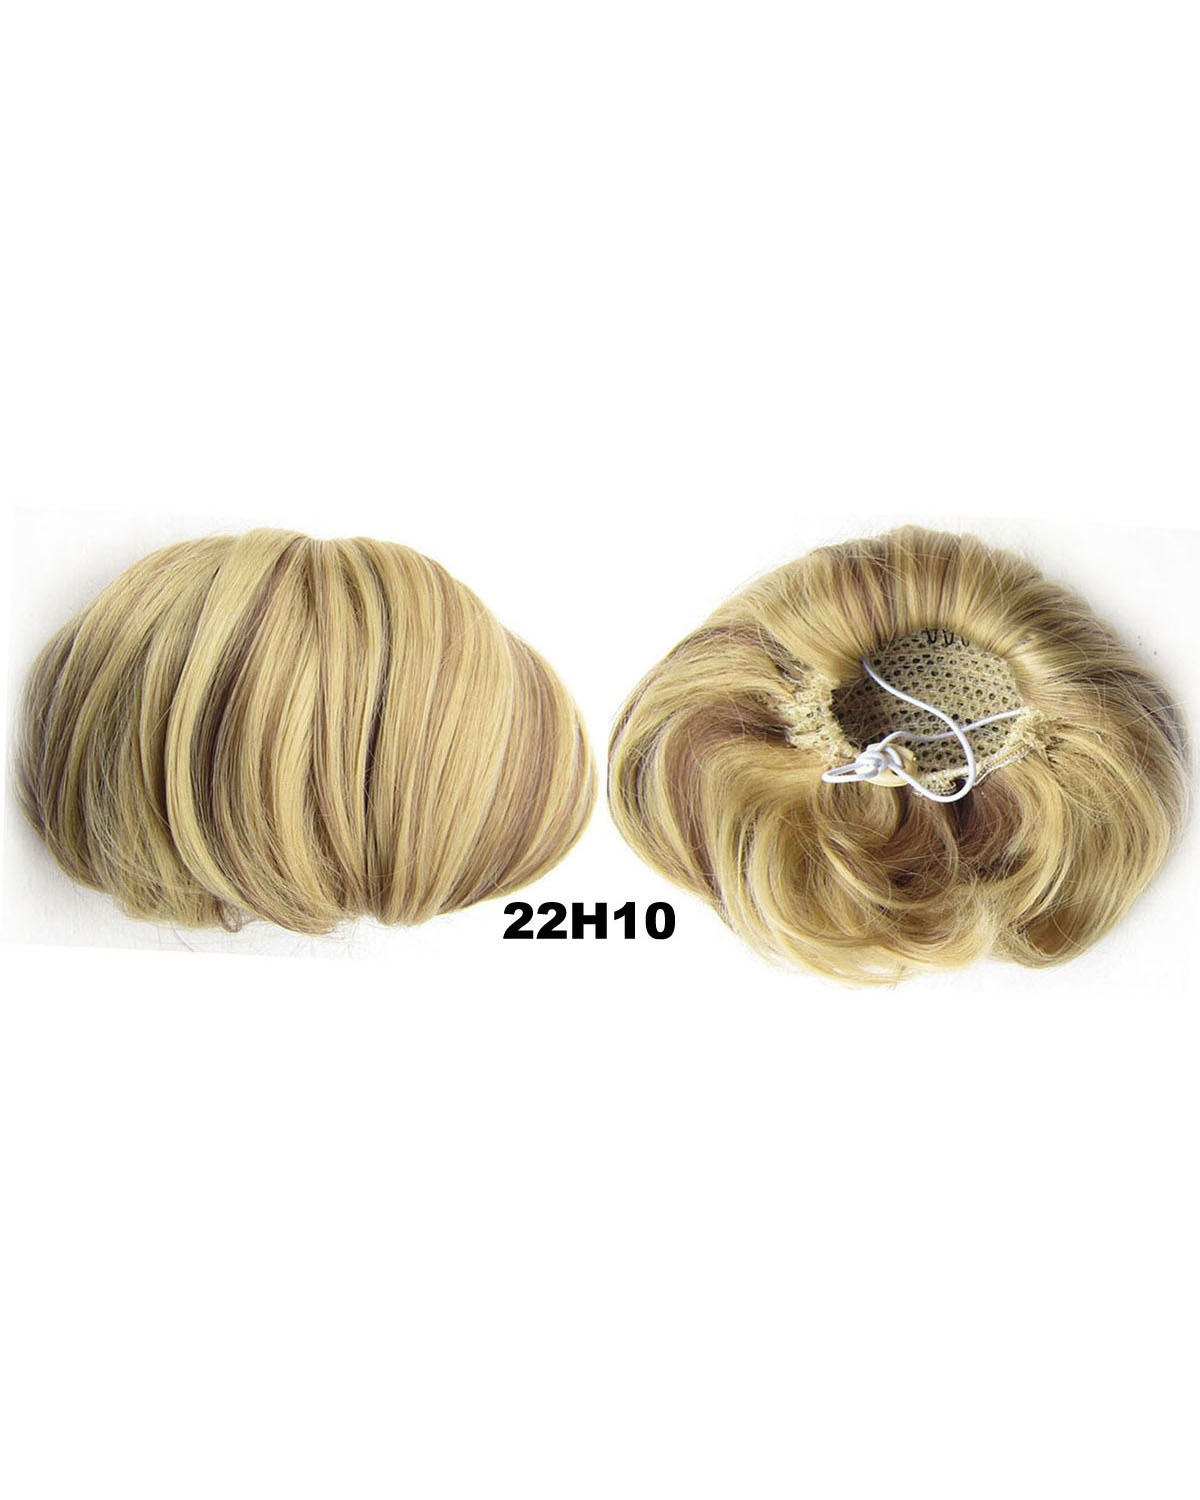 Ladies Good Quality Straight Short Hair Buns Drawstring Synthetic Hair Extension Bride Scrunchies 22H10